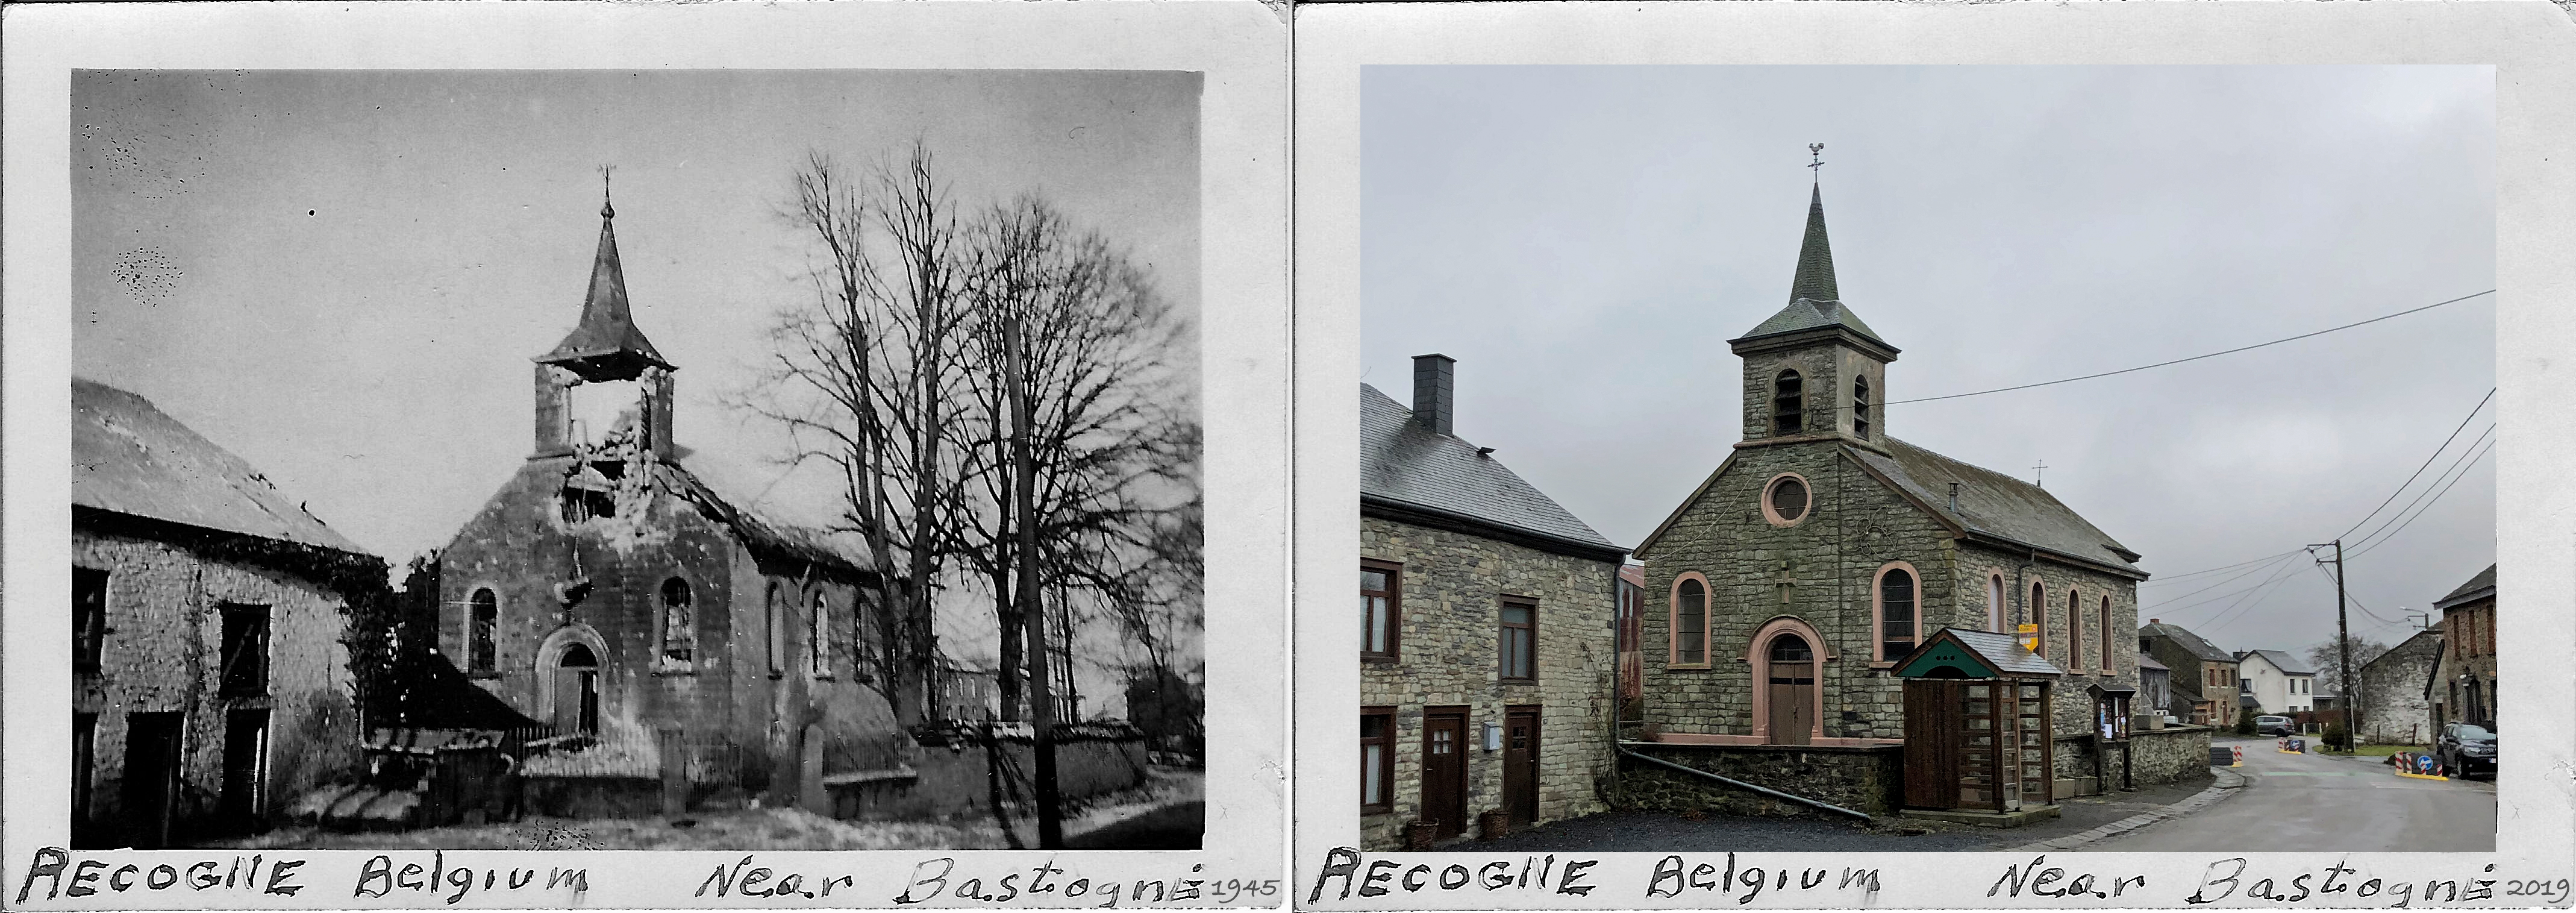 Recogne Near Bastogne Belium Battle of the bulge history then and now 1945-2019